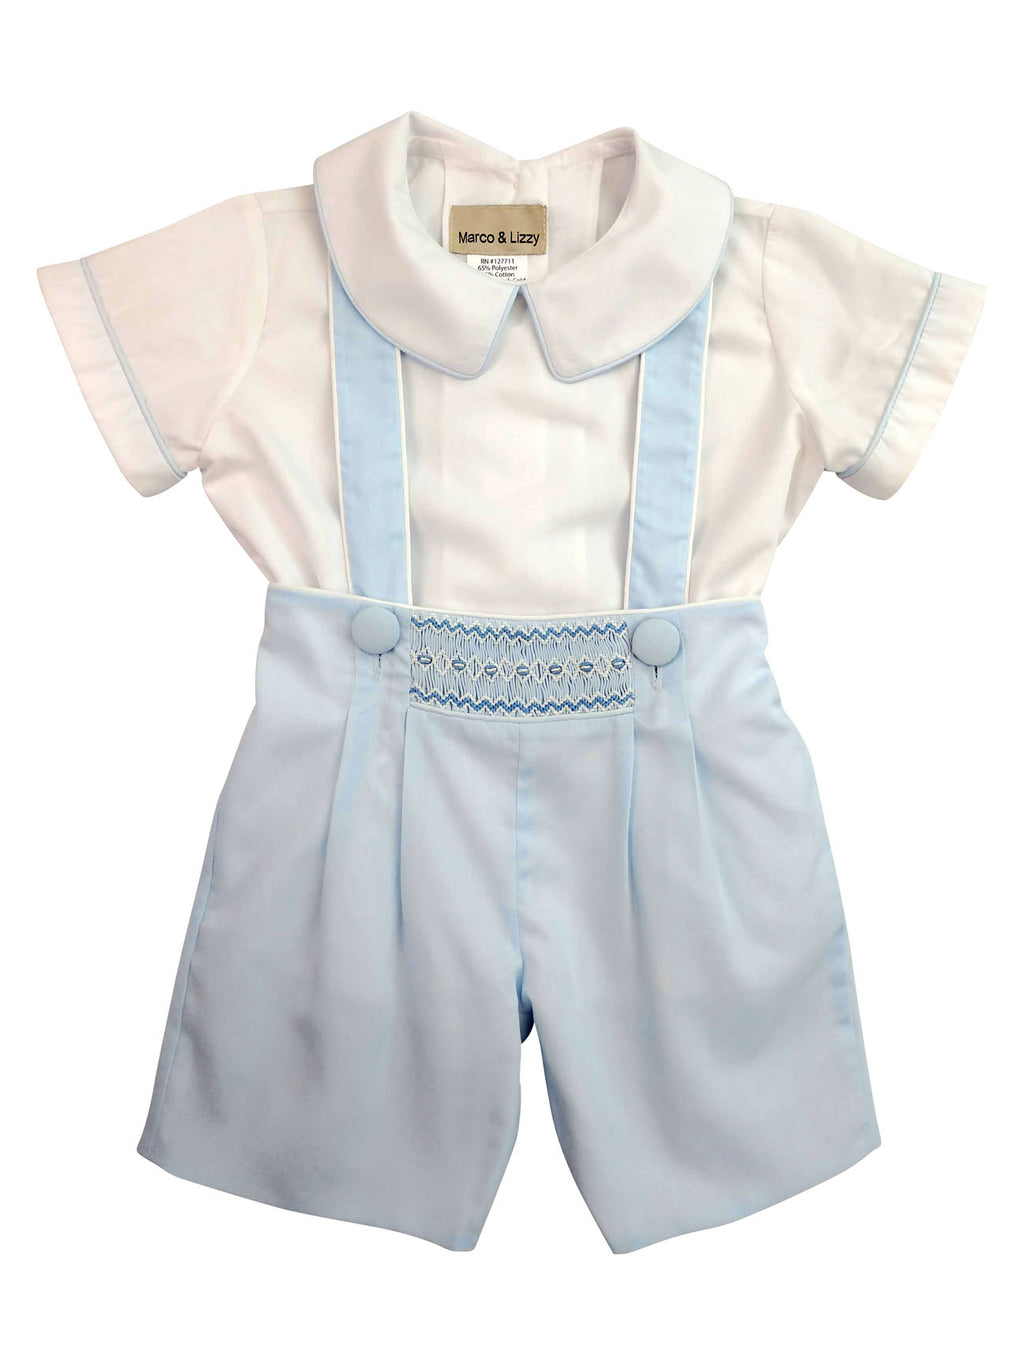 Blue hand smocked boy's short set - Little Threads Inc. Children's Clothing